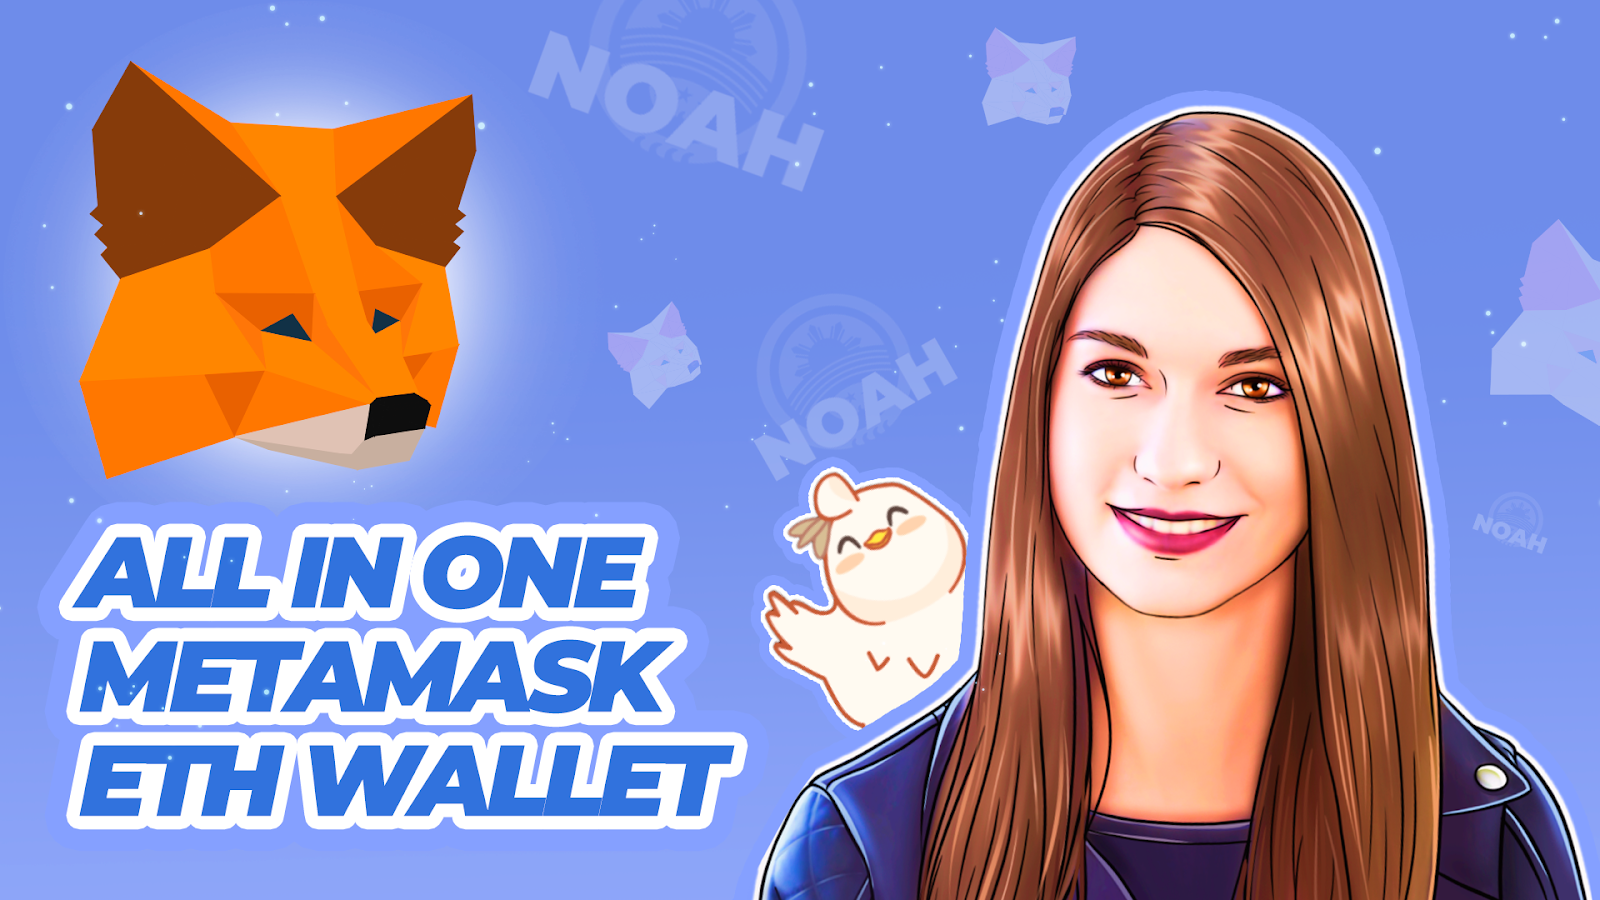 All-in-one Metamask ETH wallet: how to use and connect with ERC-20 NOAH